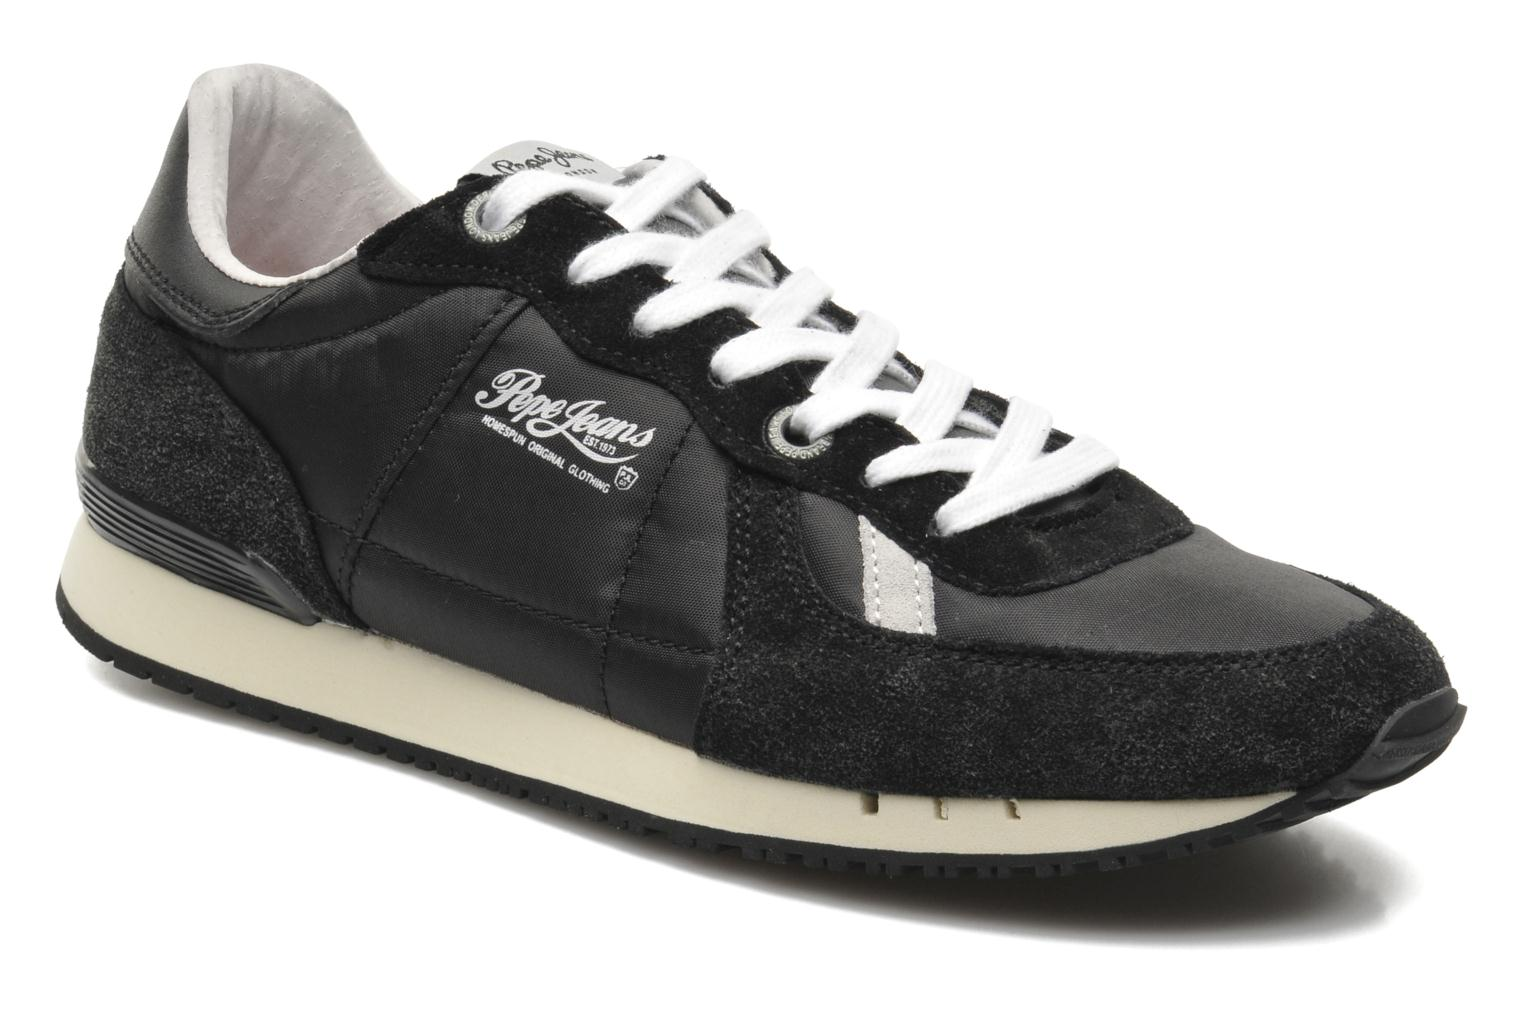 Sneakers Tinker by Pepe jeans